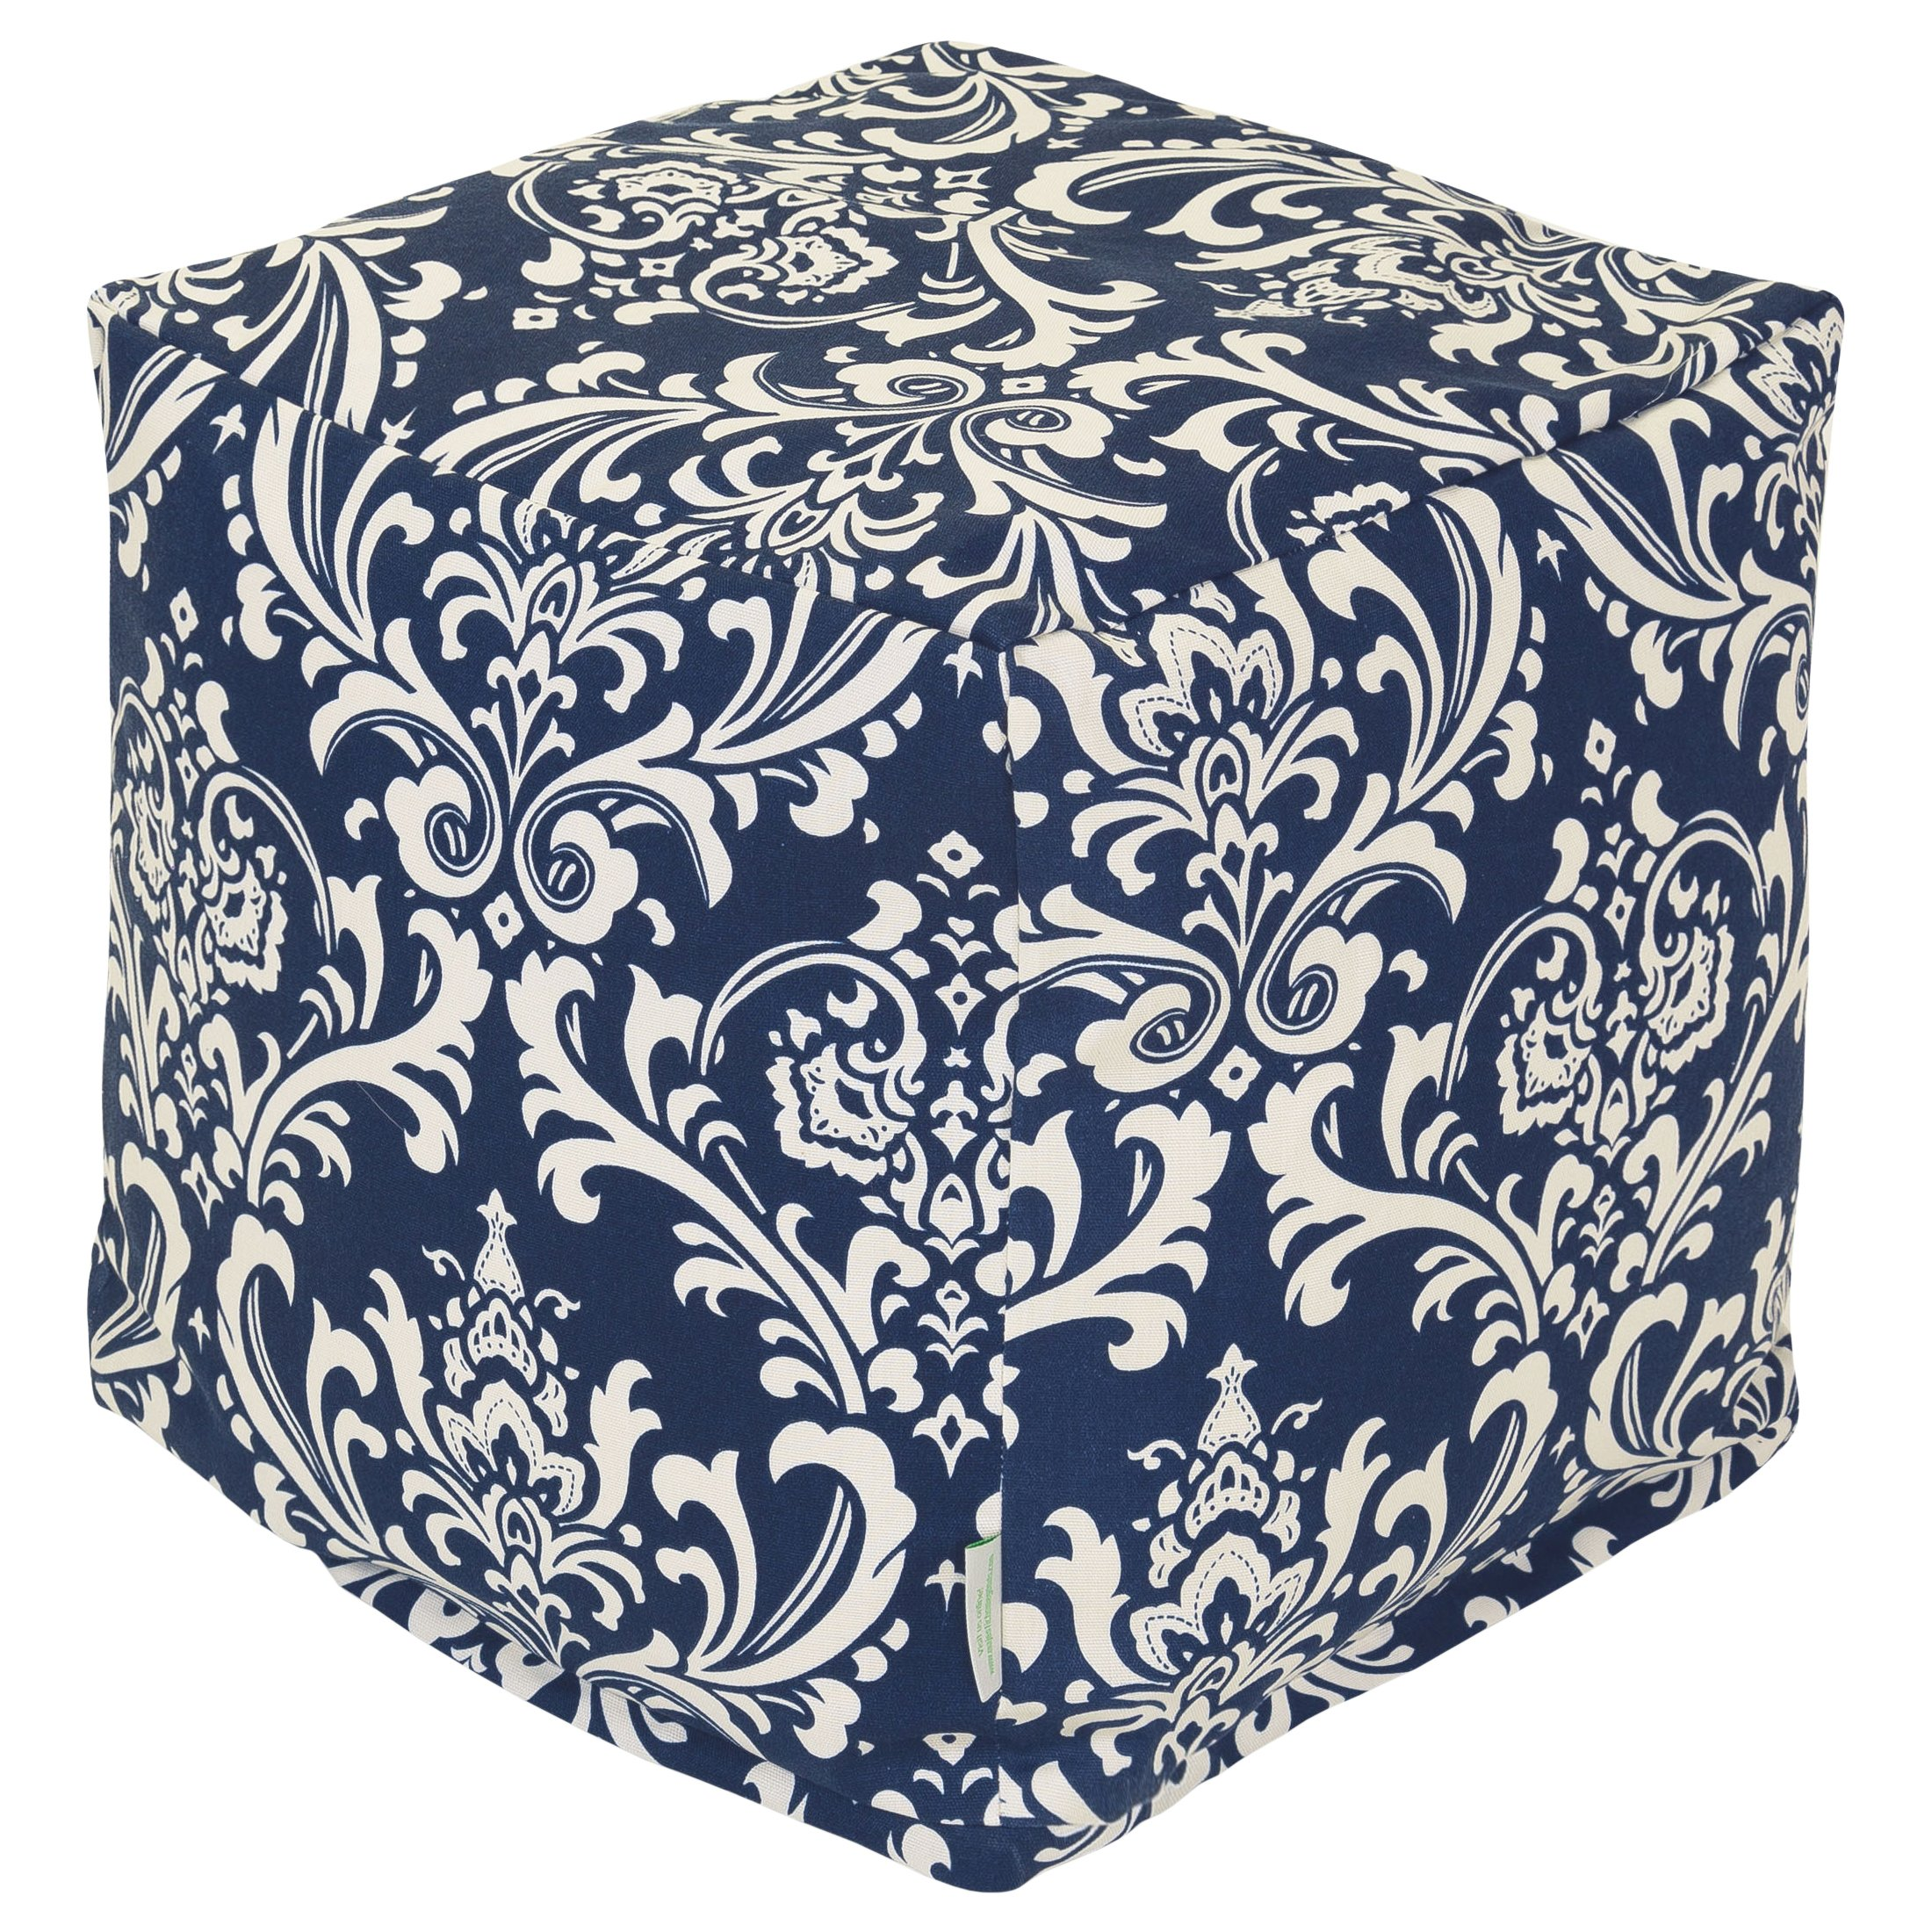 Majestic Home Goods French Quarter Cube, Small, Navy Blue